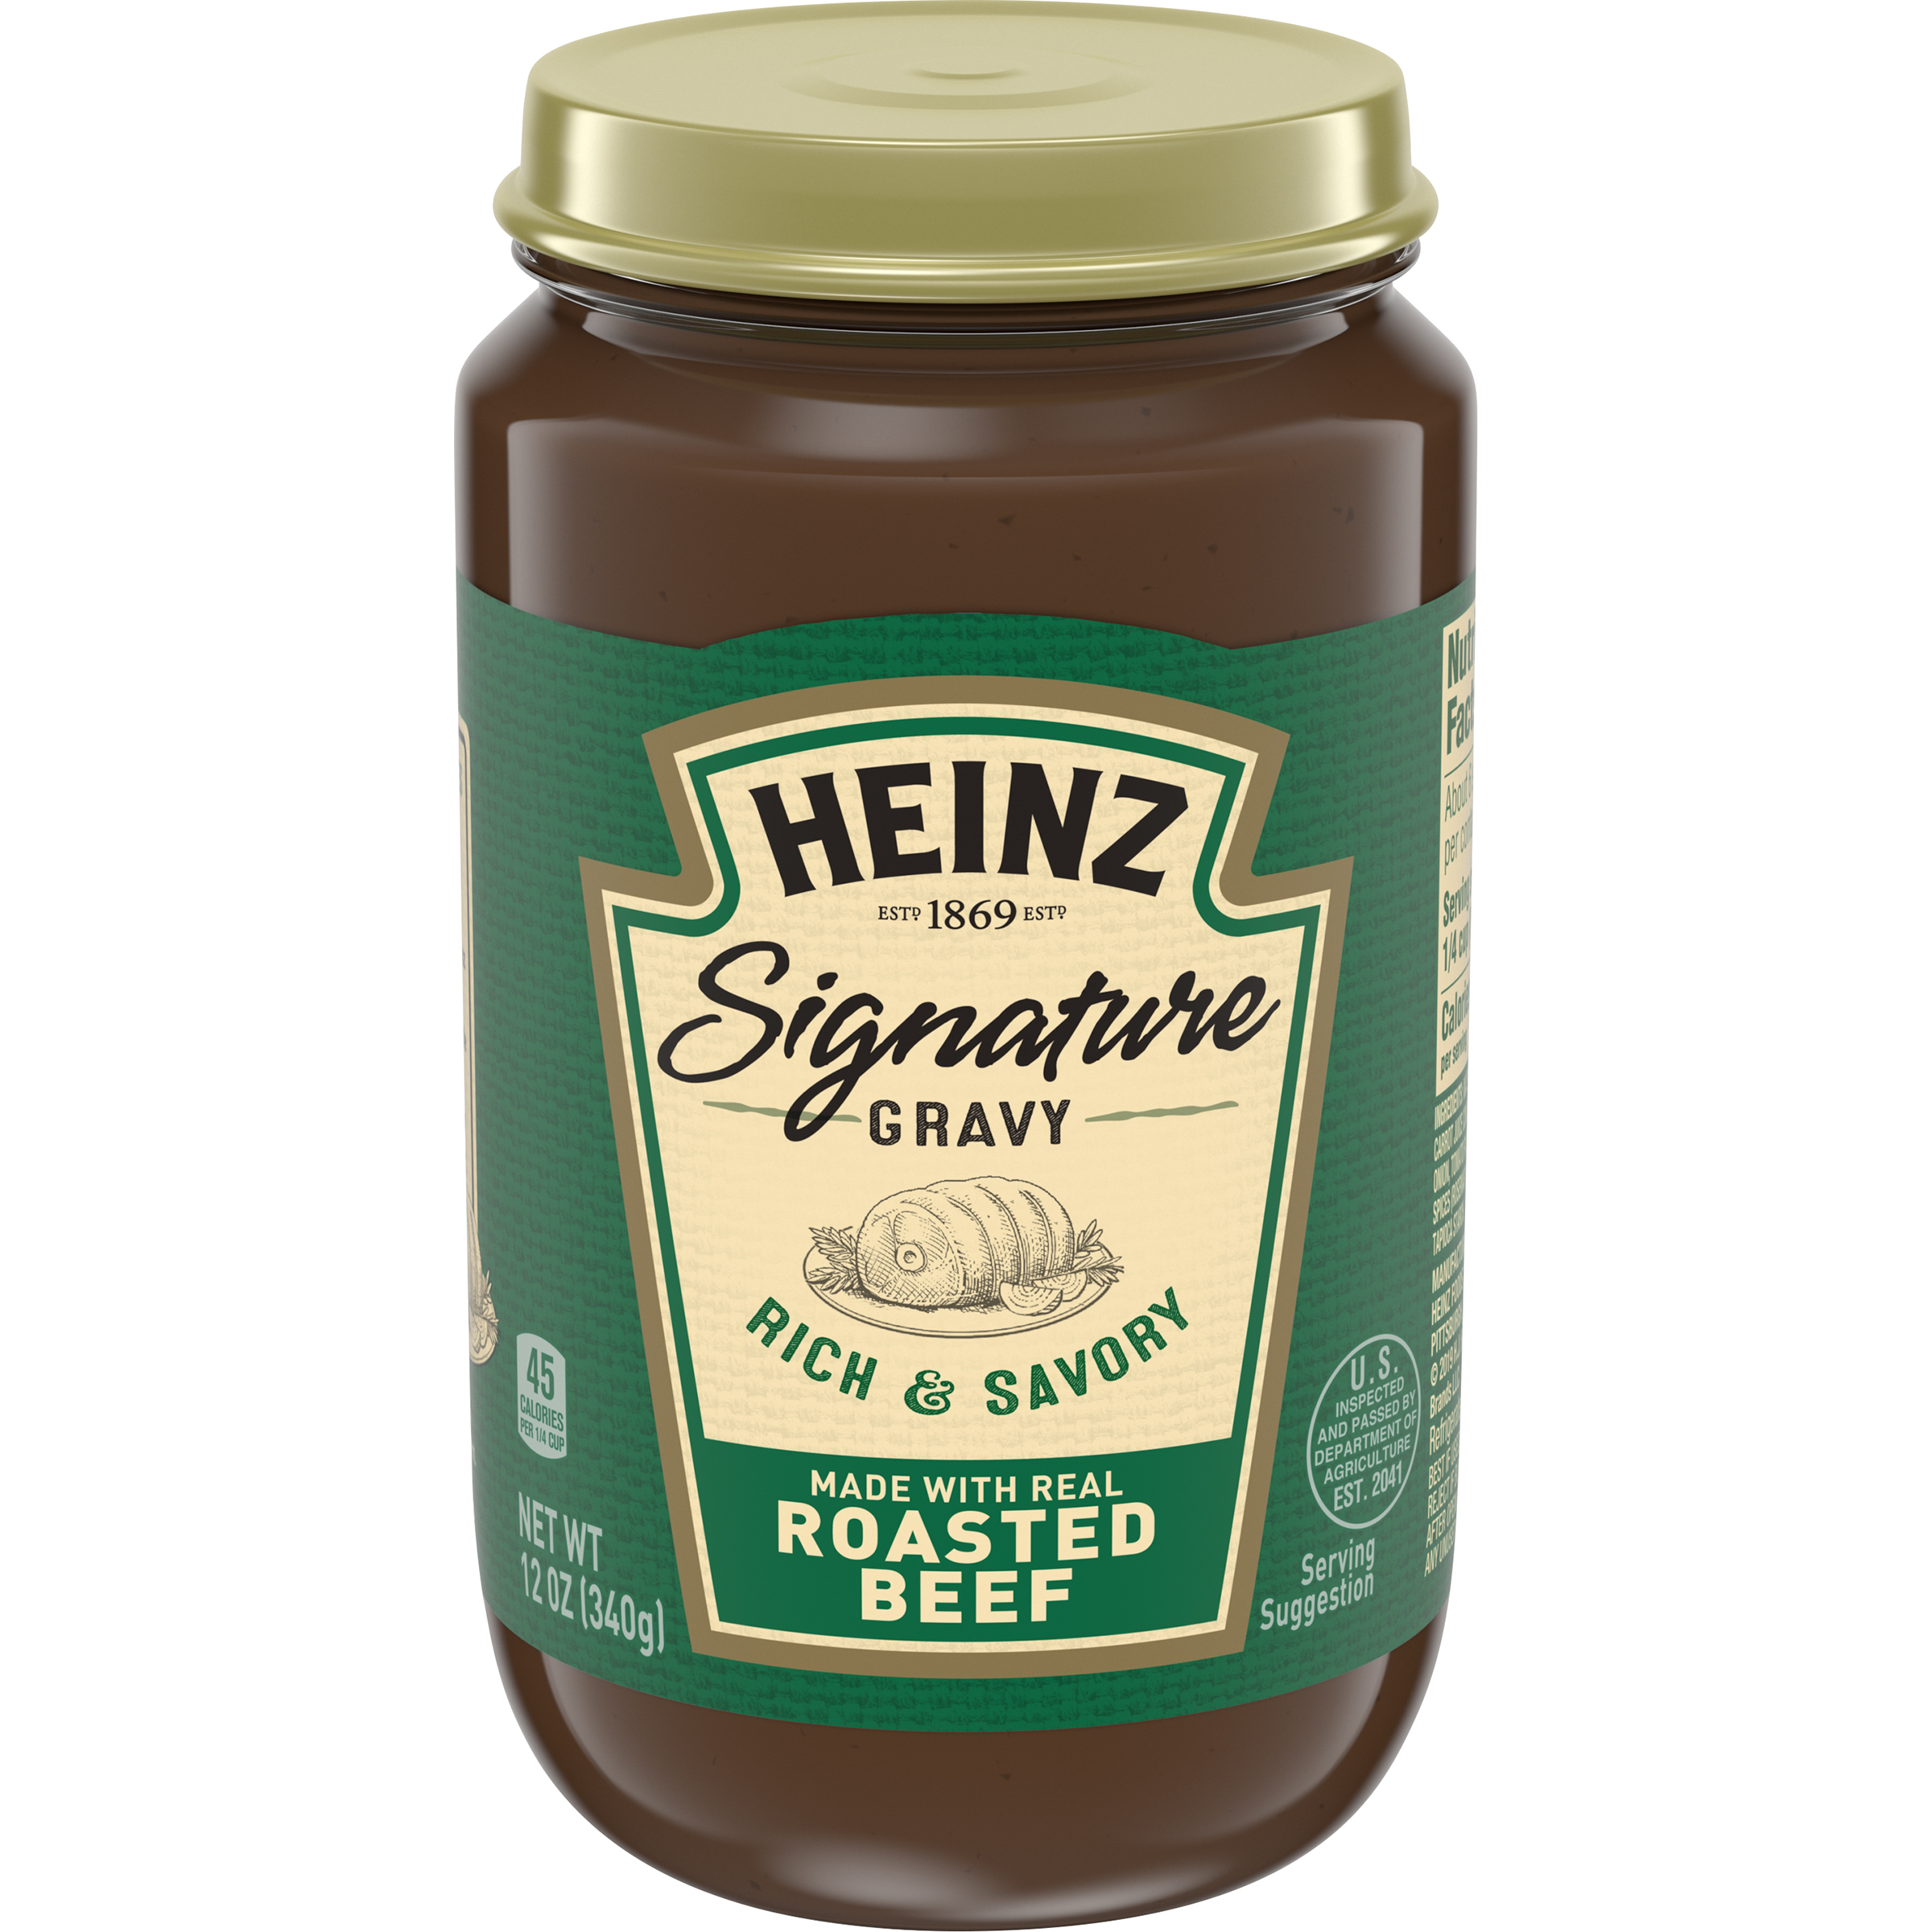 Heinz Signature Rich & Savory Roasted Beef Gravy 12 oz Jar image